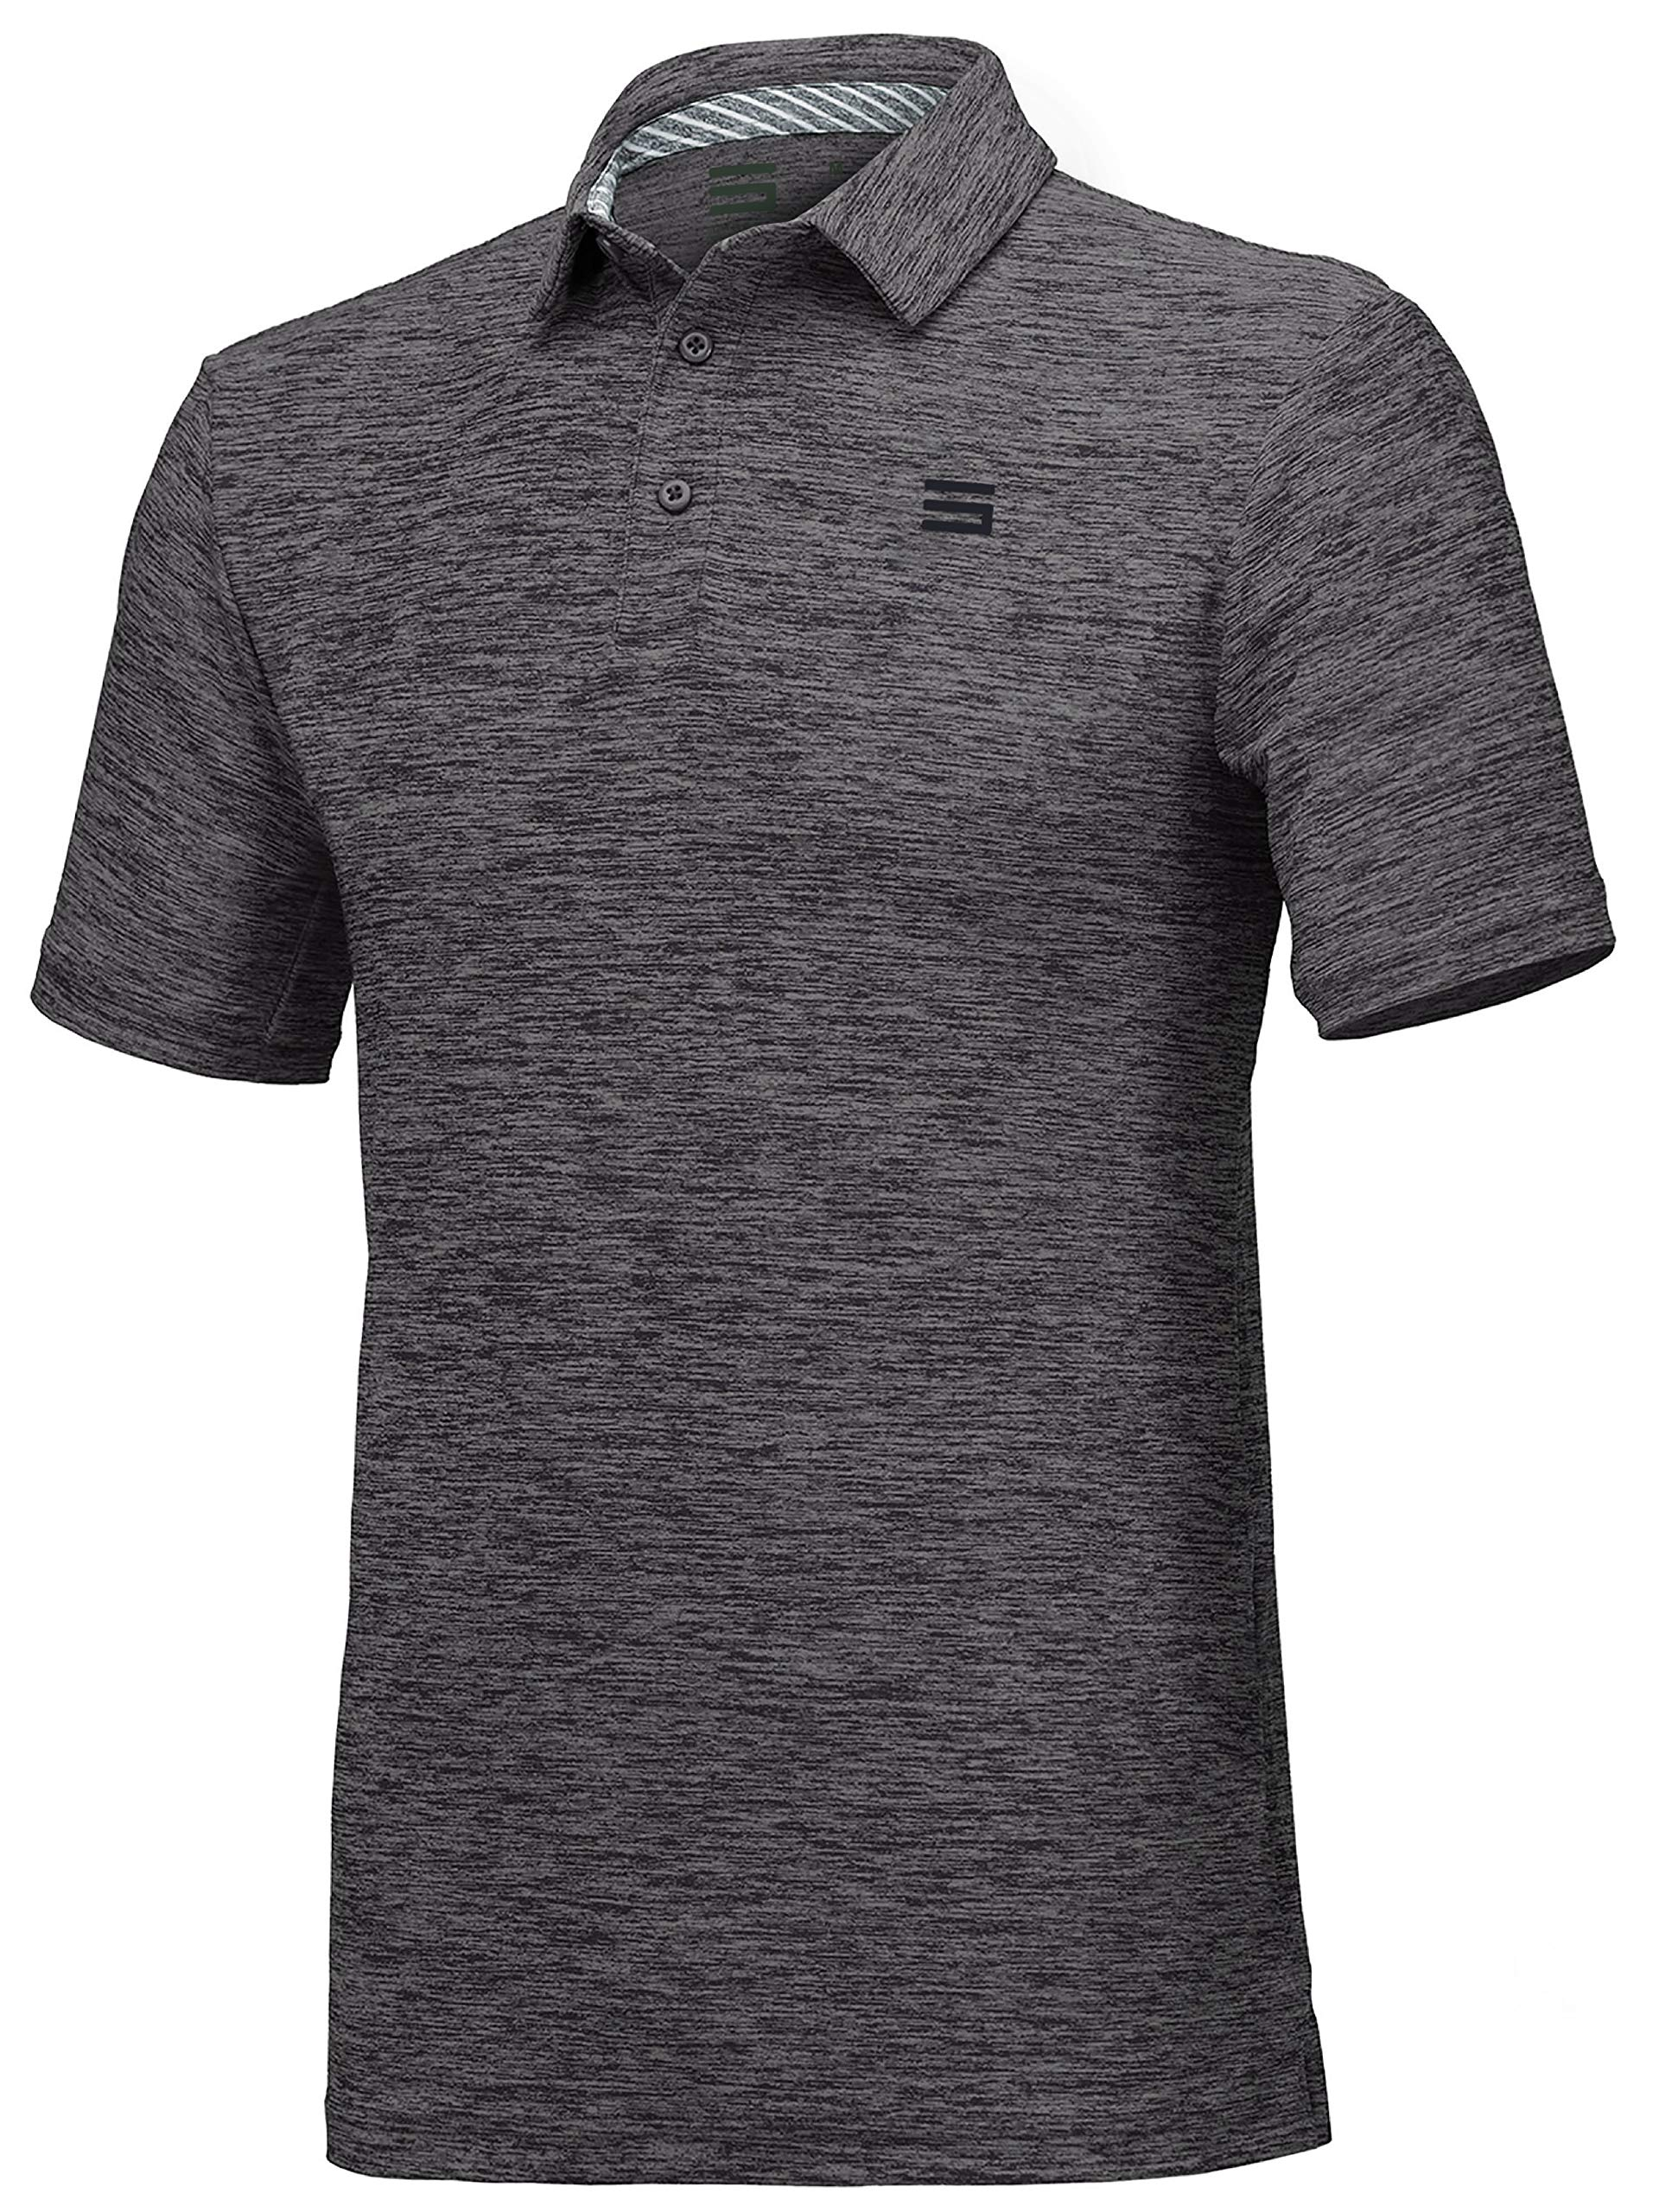 Three Sixty Six Golf Shirts for Men - Dry Fit Short-Sleeve Polo, Athletic Casual Collared T-Shirt Black by Three Sixty Six